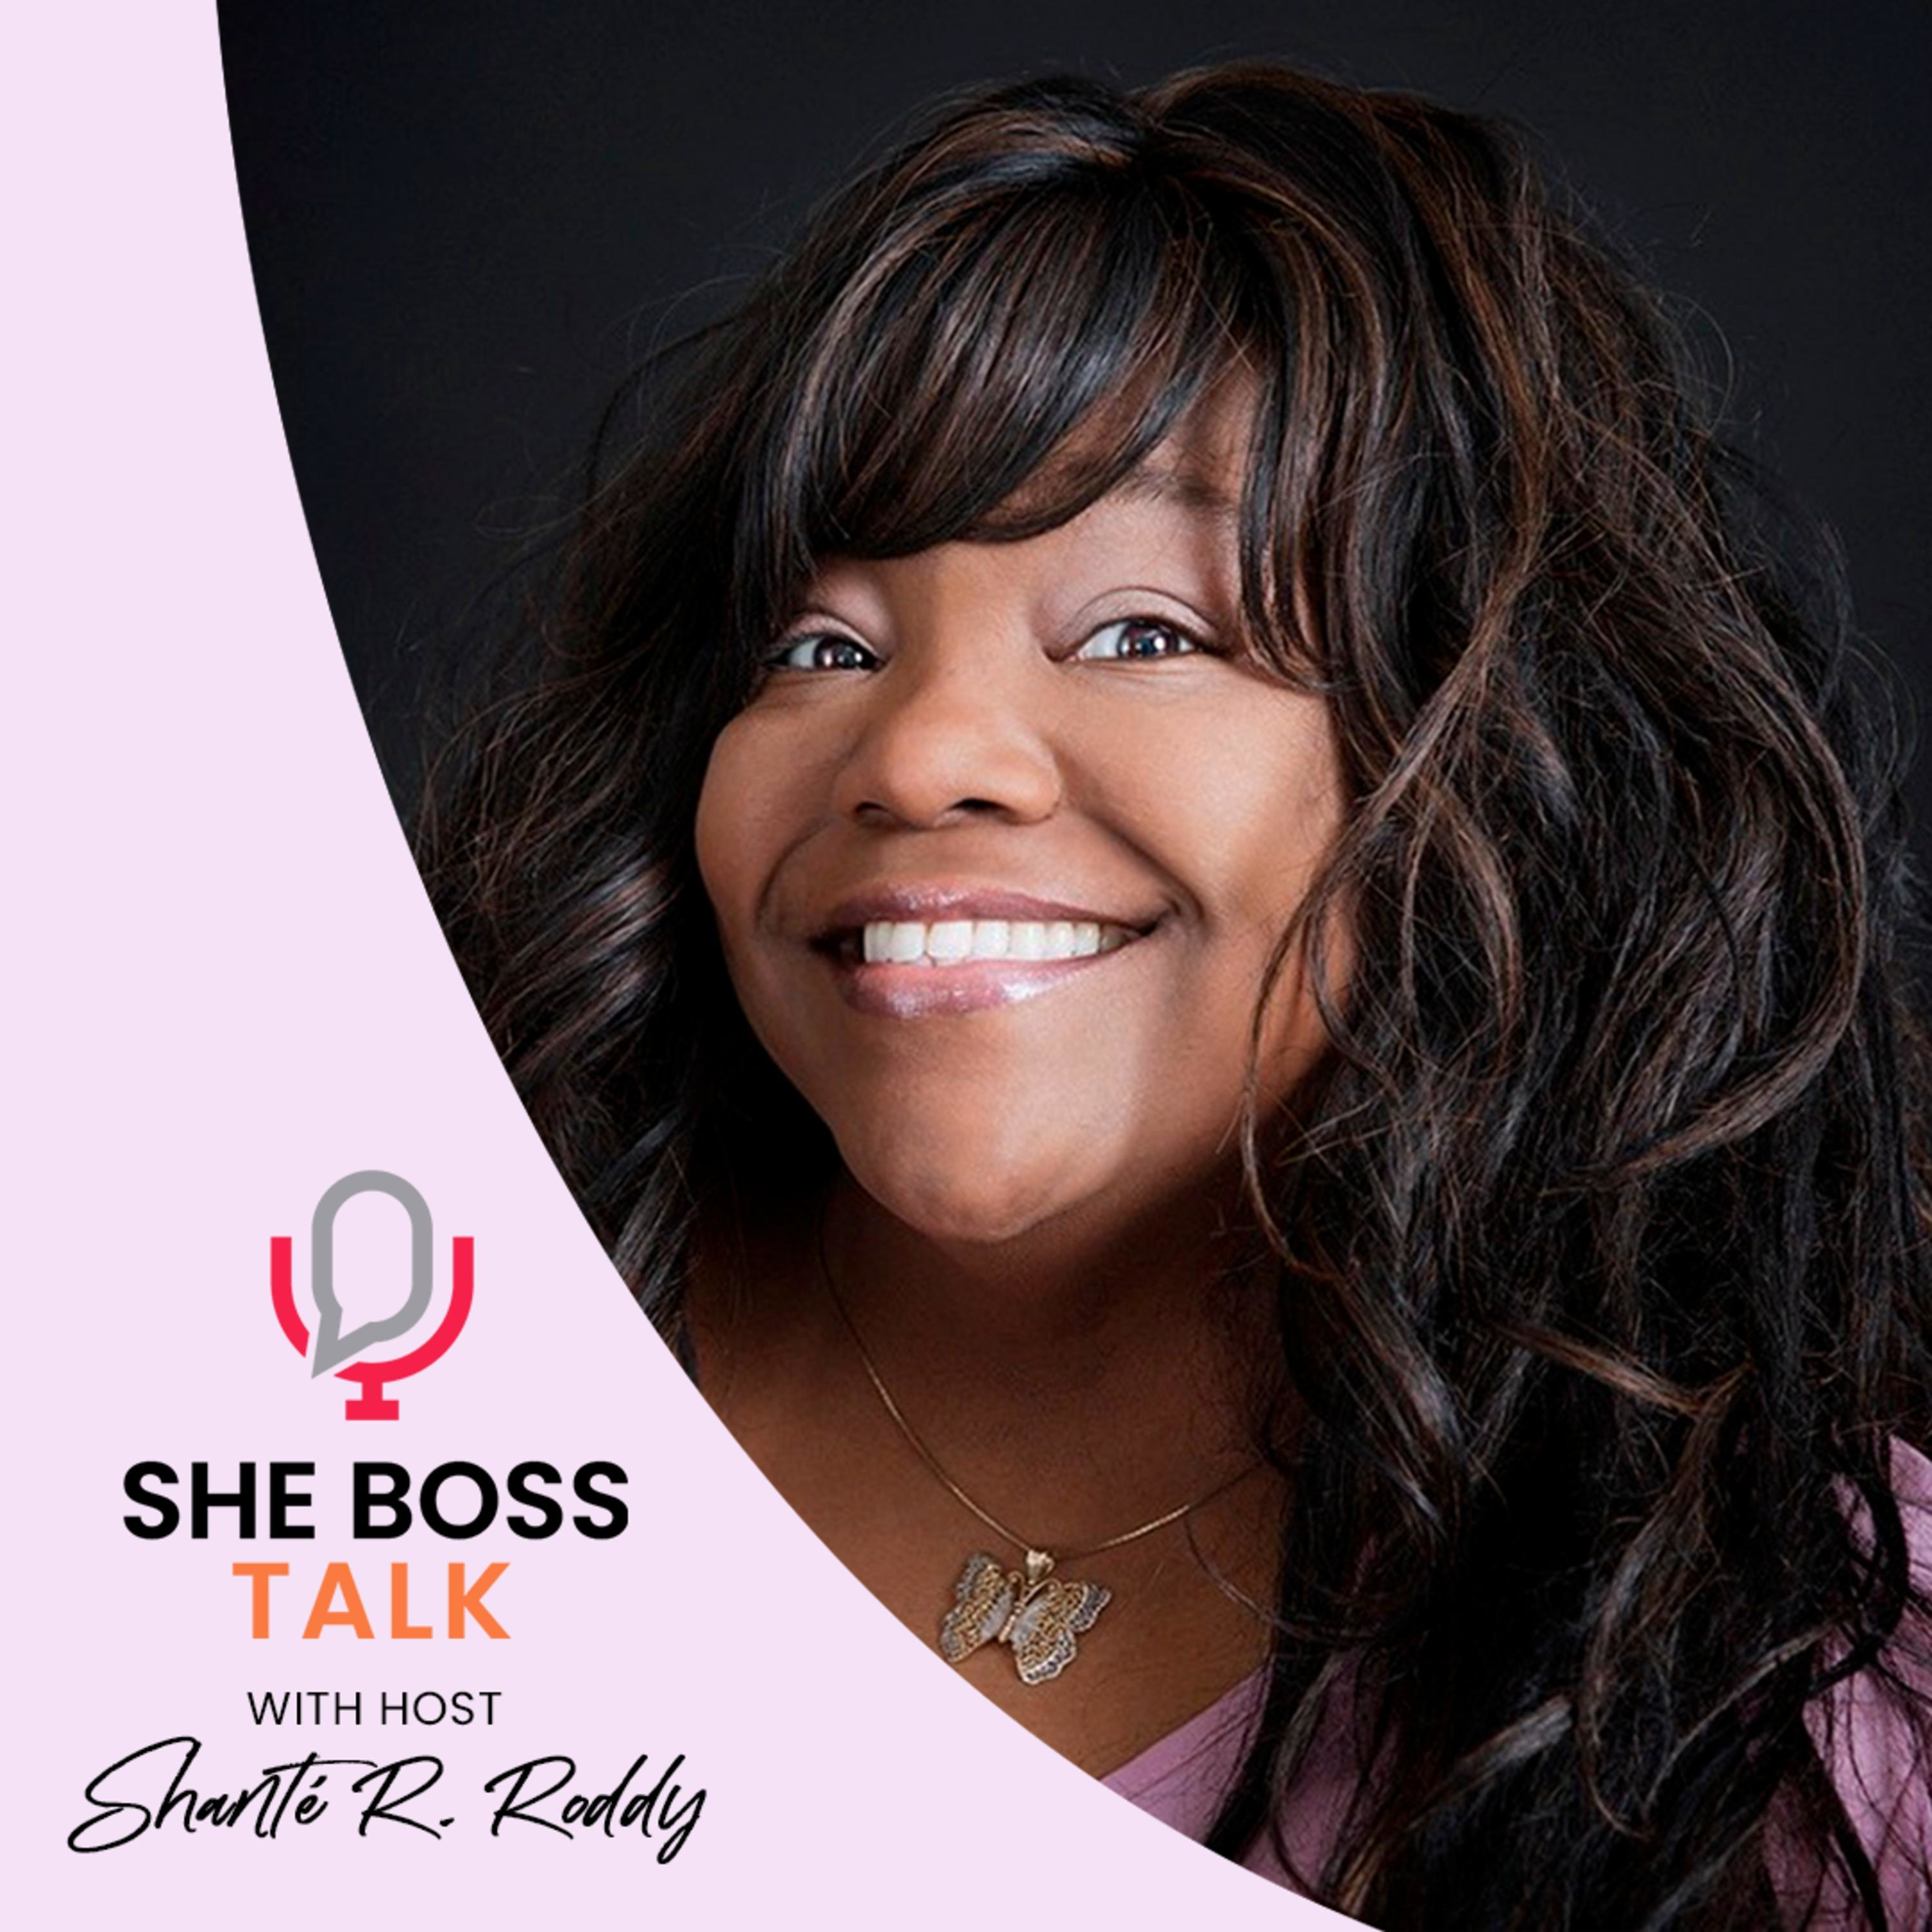 WOMEN BUSINESS OWNERS PREPARE TO Access Funding, Grants and More | She Boss Talk